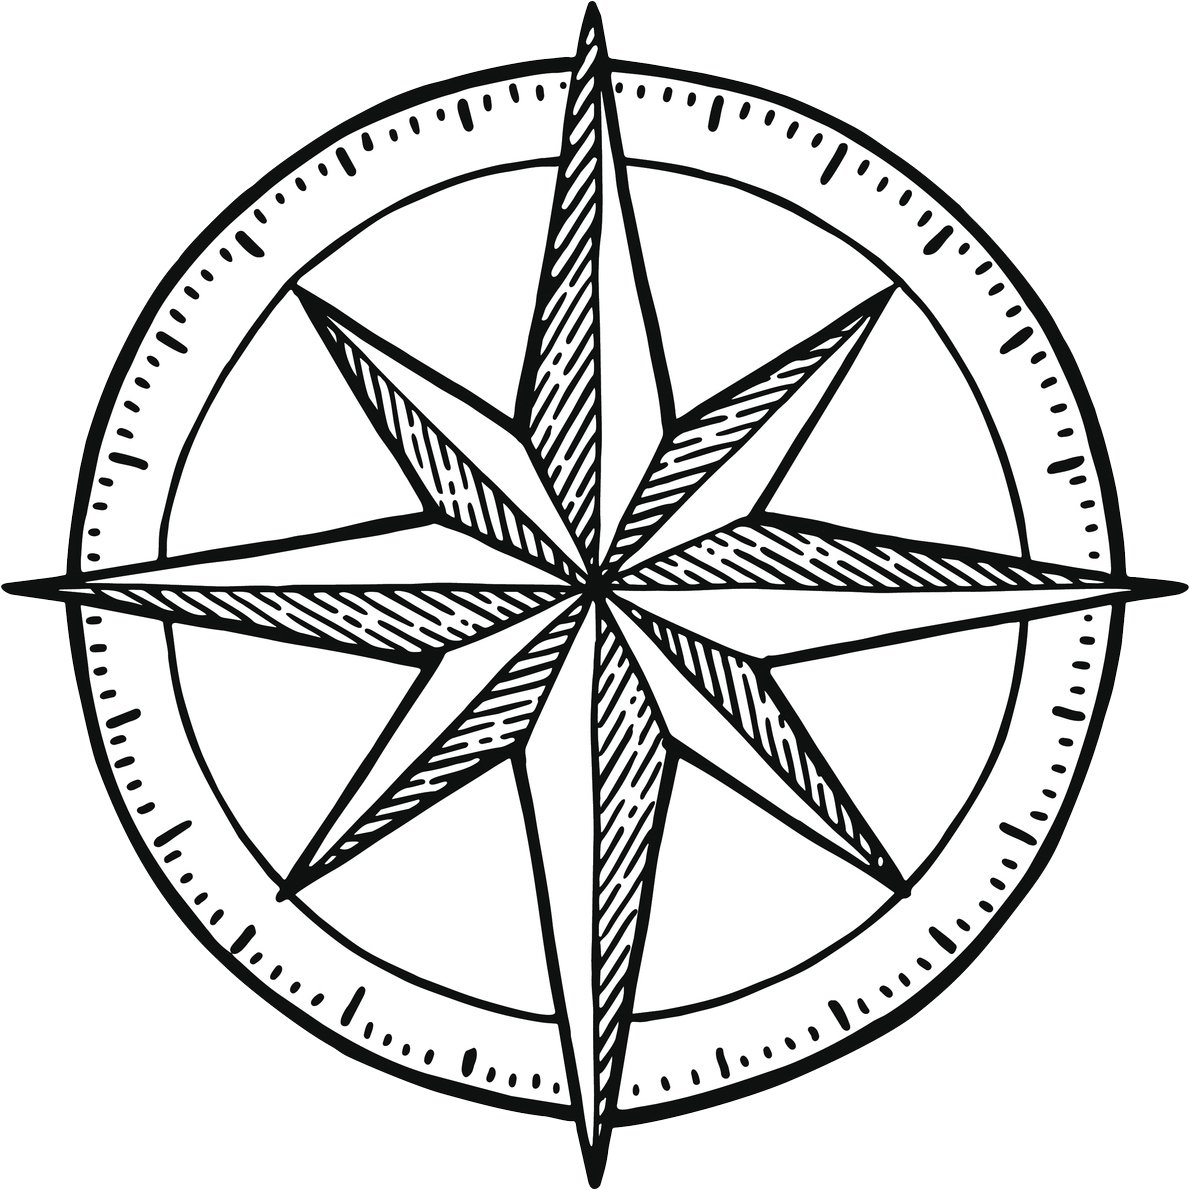 1189x1190 Simple Dainty Hipster Compass Sketch Vinyl Decal